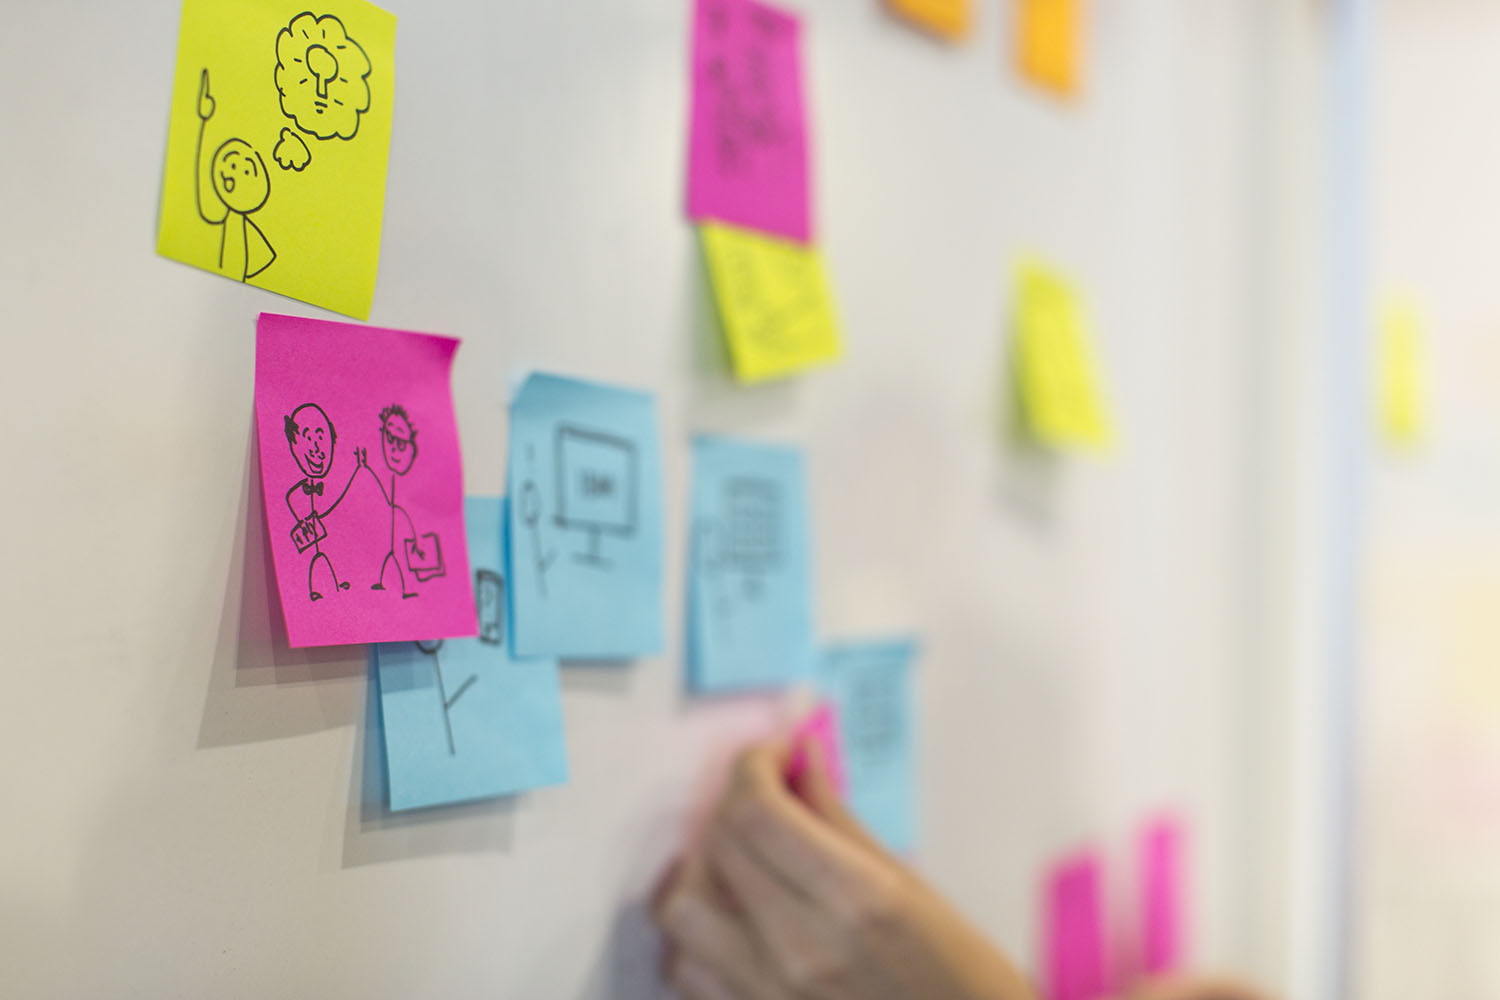 User flows can be drawn or written, to guide the product development with the user's story in mind